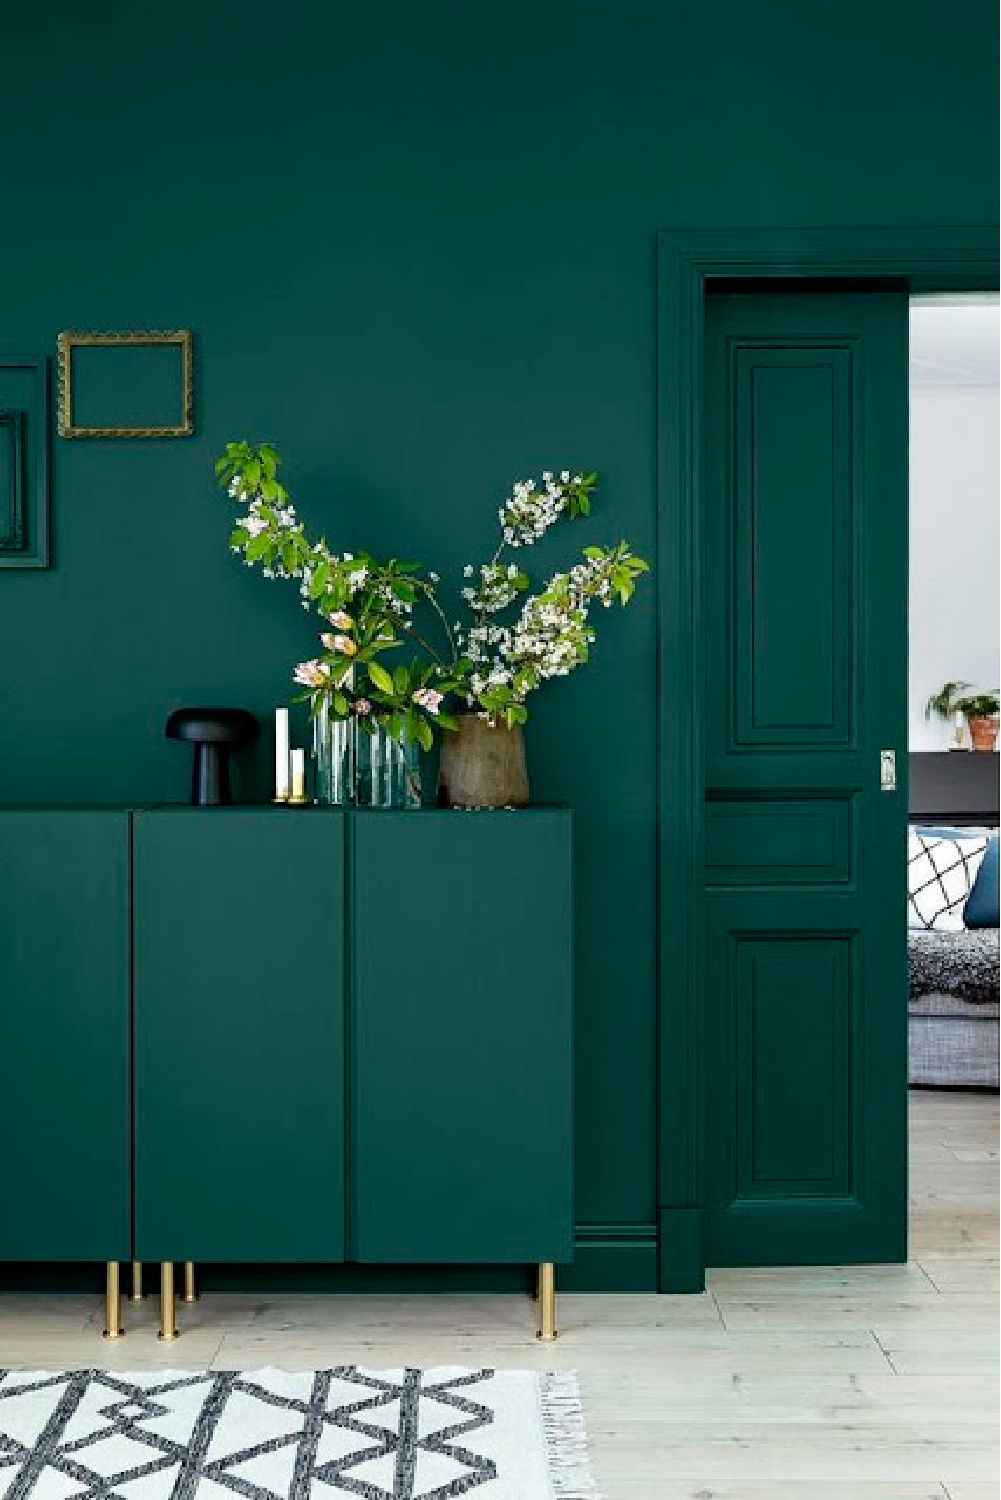 Deep teal walls and matching trim in living room - Come explore Dark Green Paint, Autumnal Greens & Interior Design Inspiration!